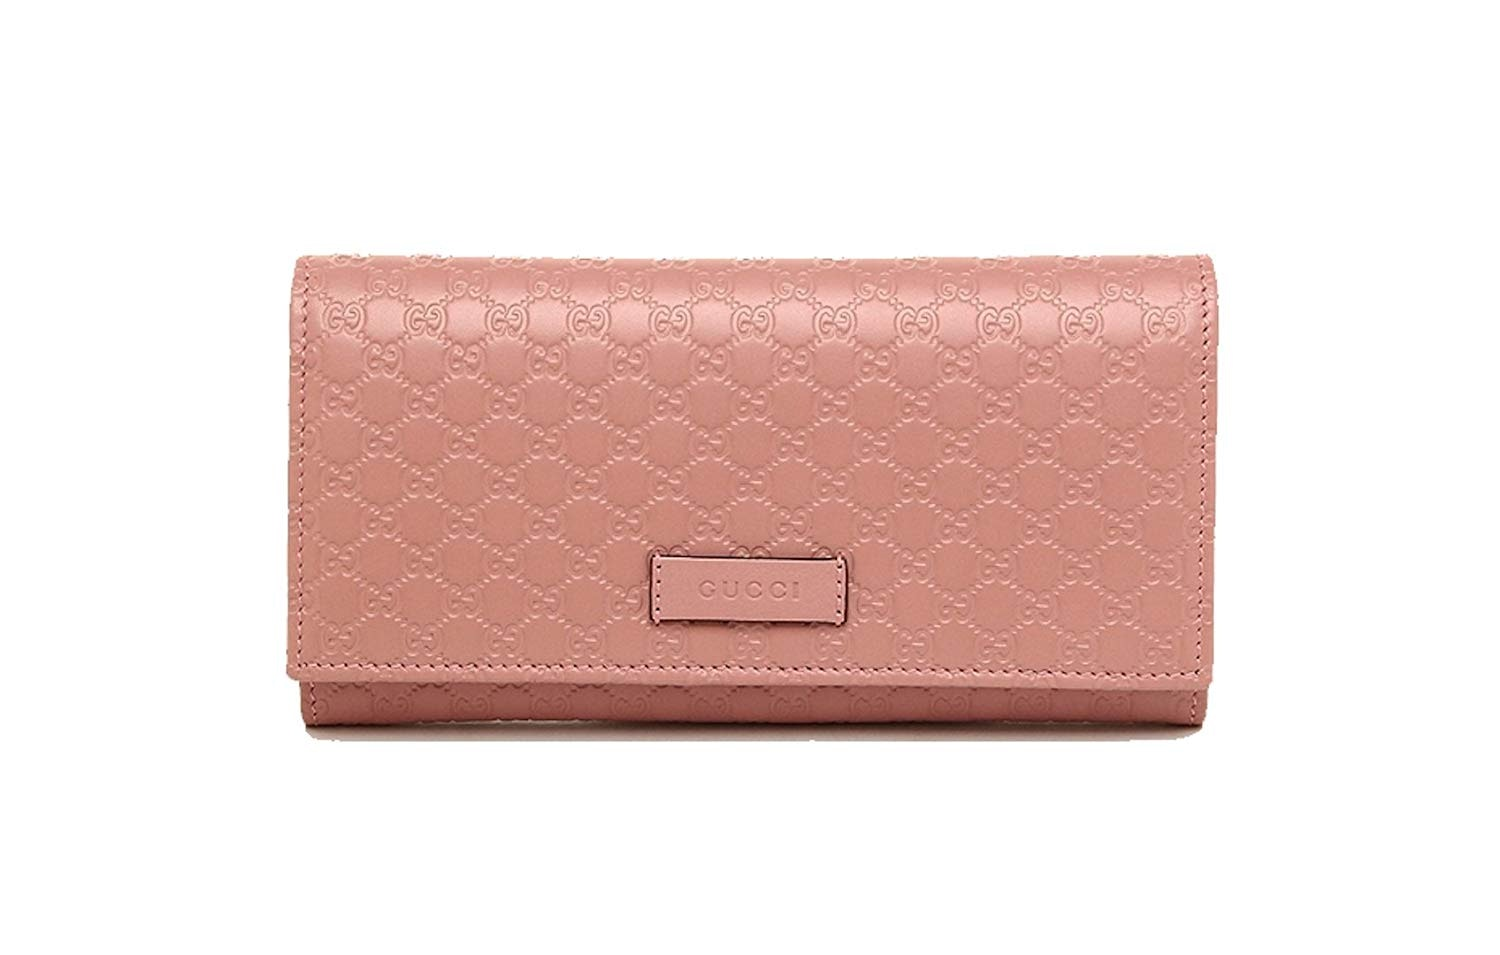 Gucci Continential Bifold Wallet Microguccissima Soft Pink